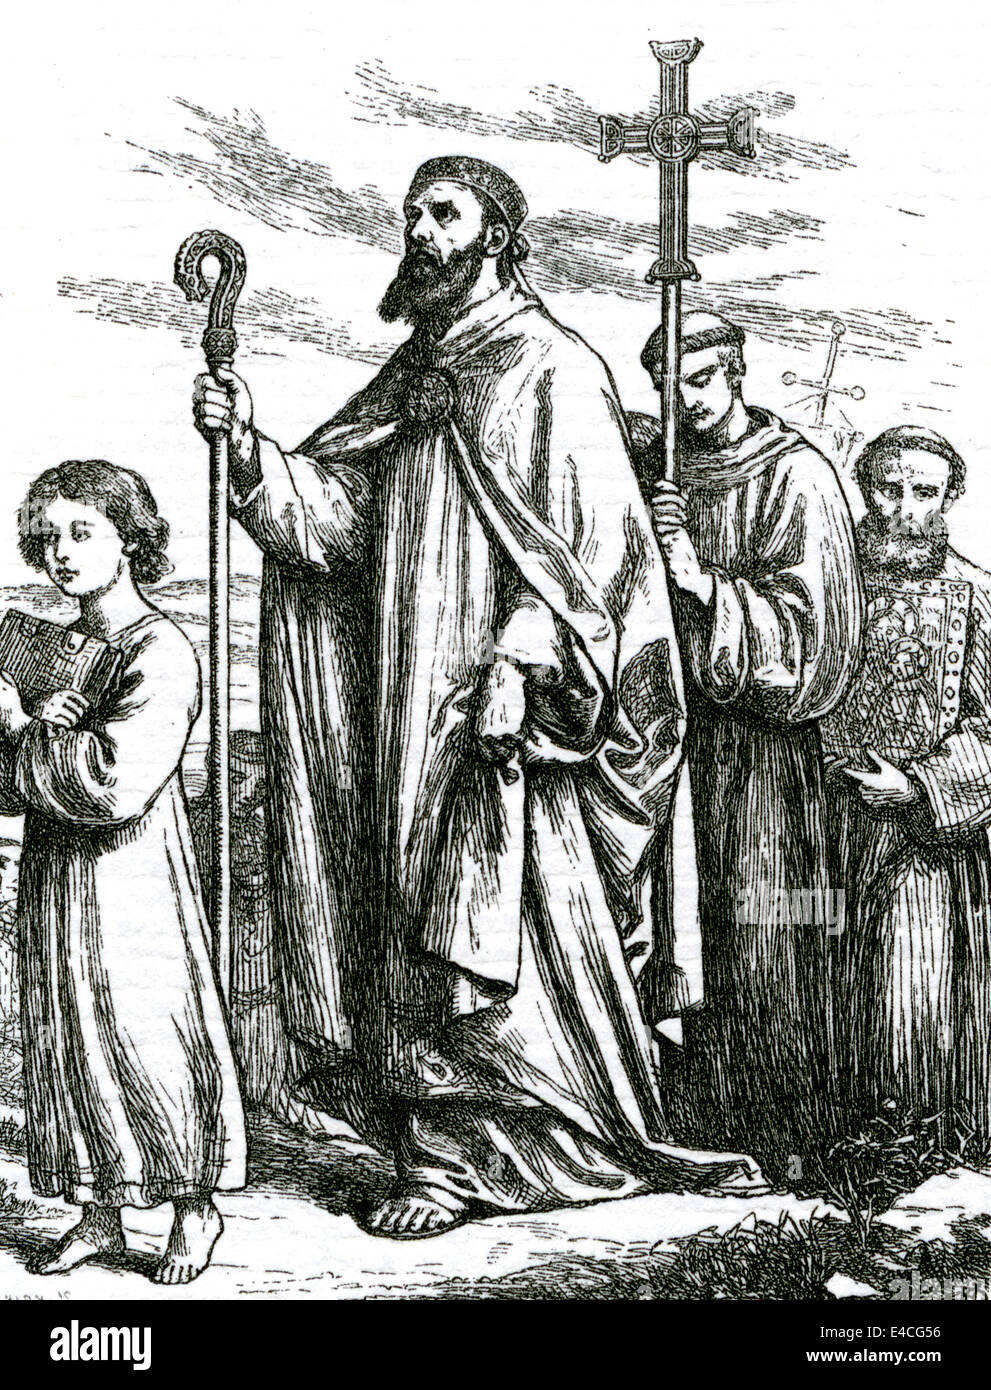 ST PETER arriving at Tara in a Victorian engraving - Stock Image